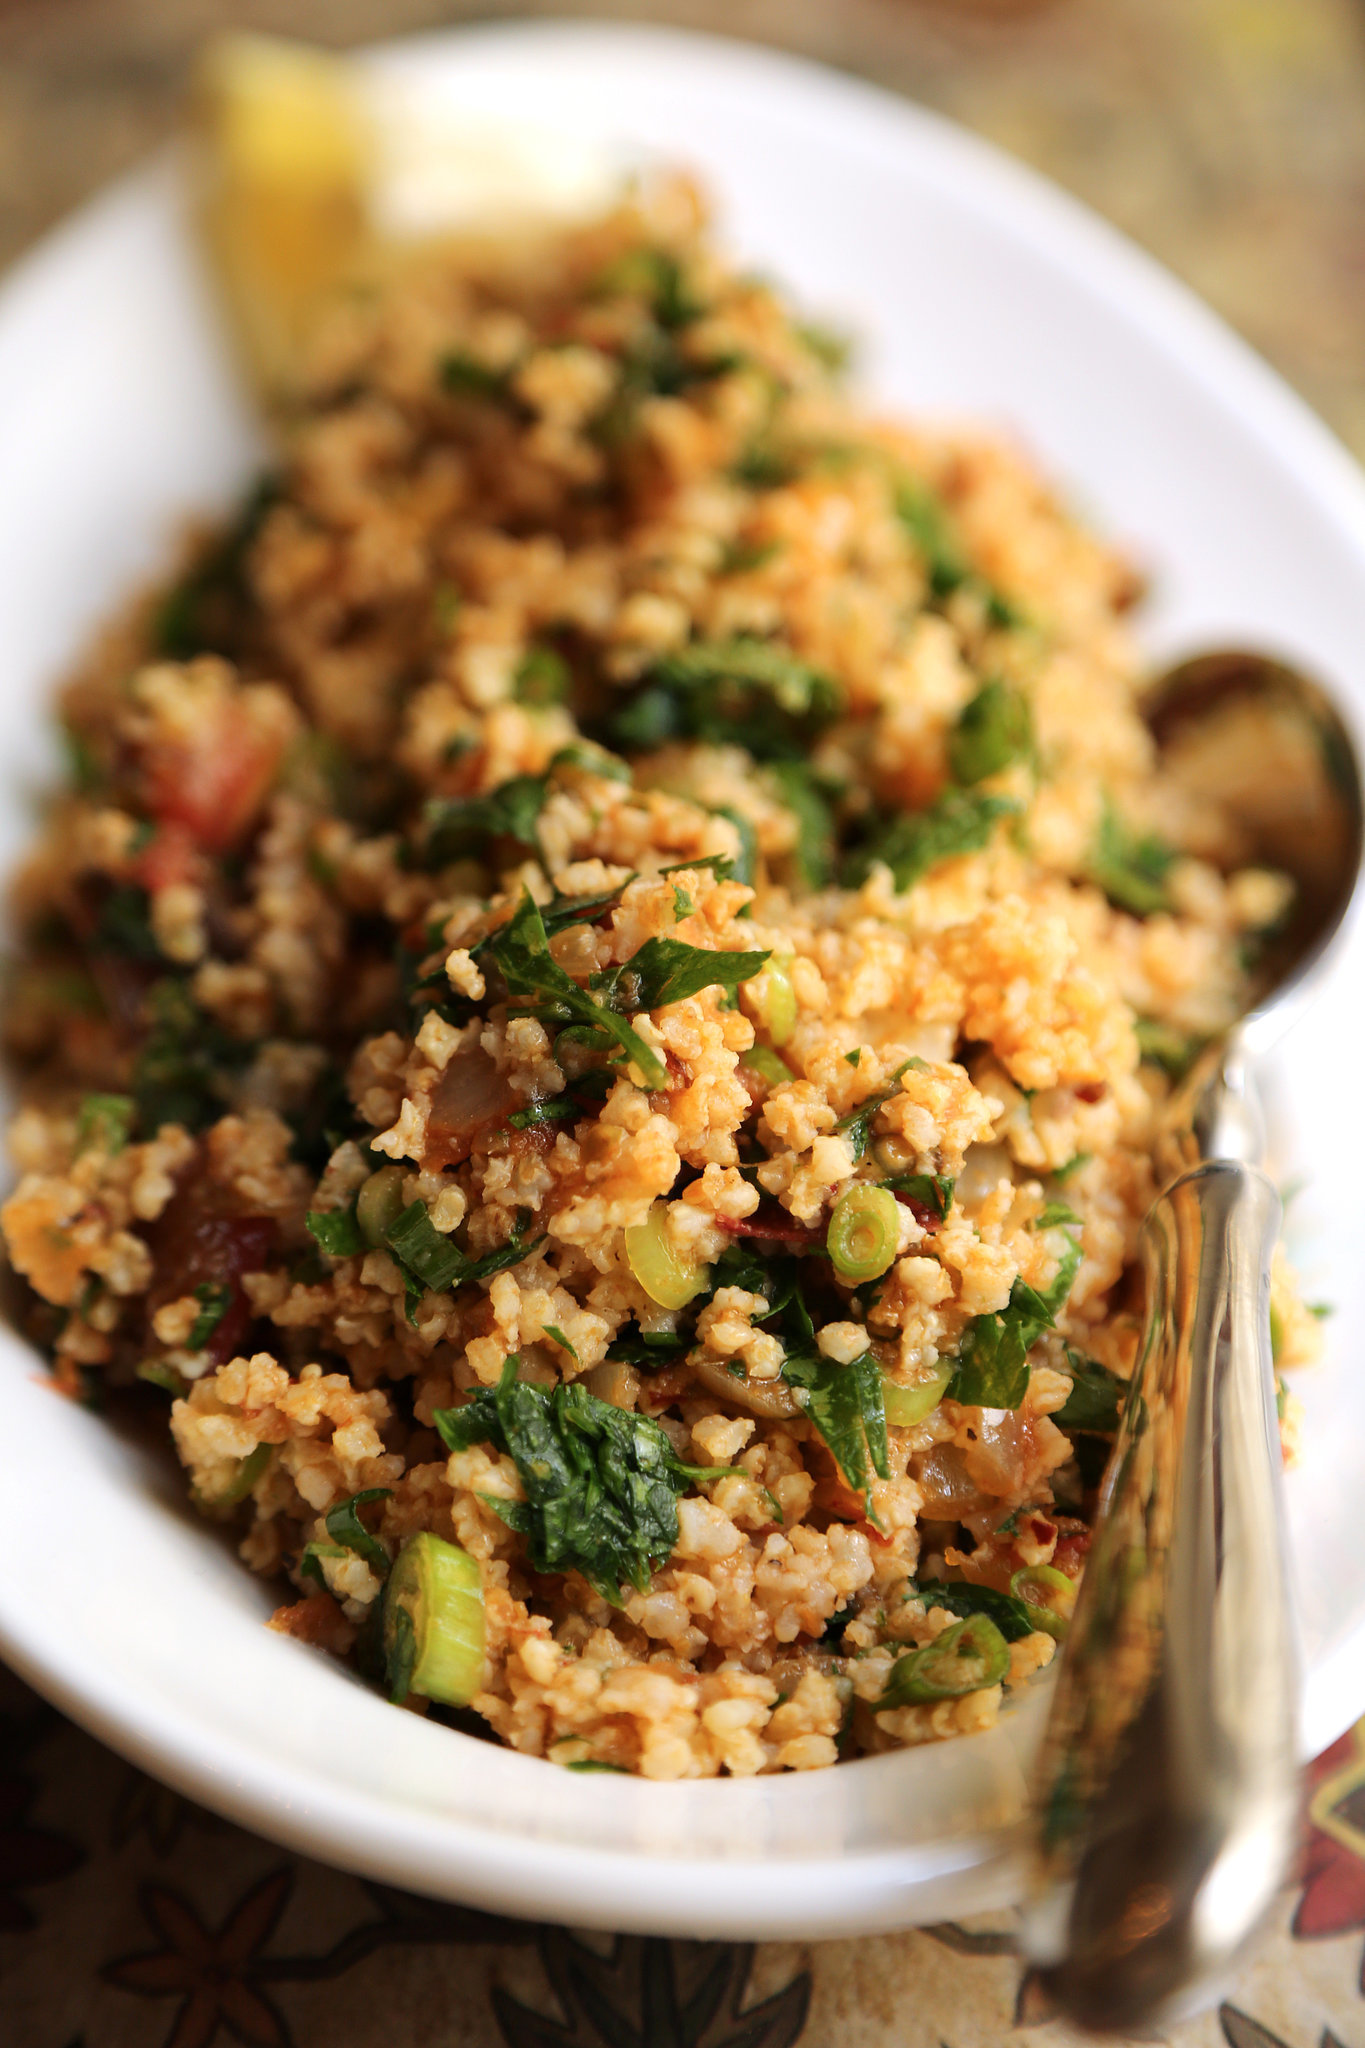 Fast, Easy, Healthy Recipe For Quinoa Tabbouleh | POPSUGAR Fitness UK